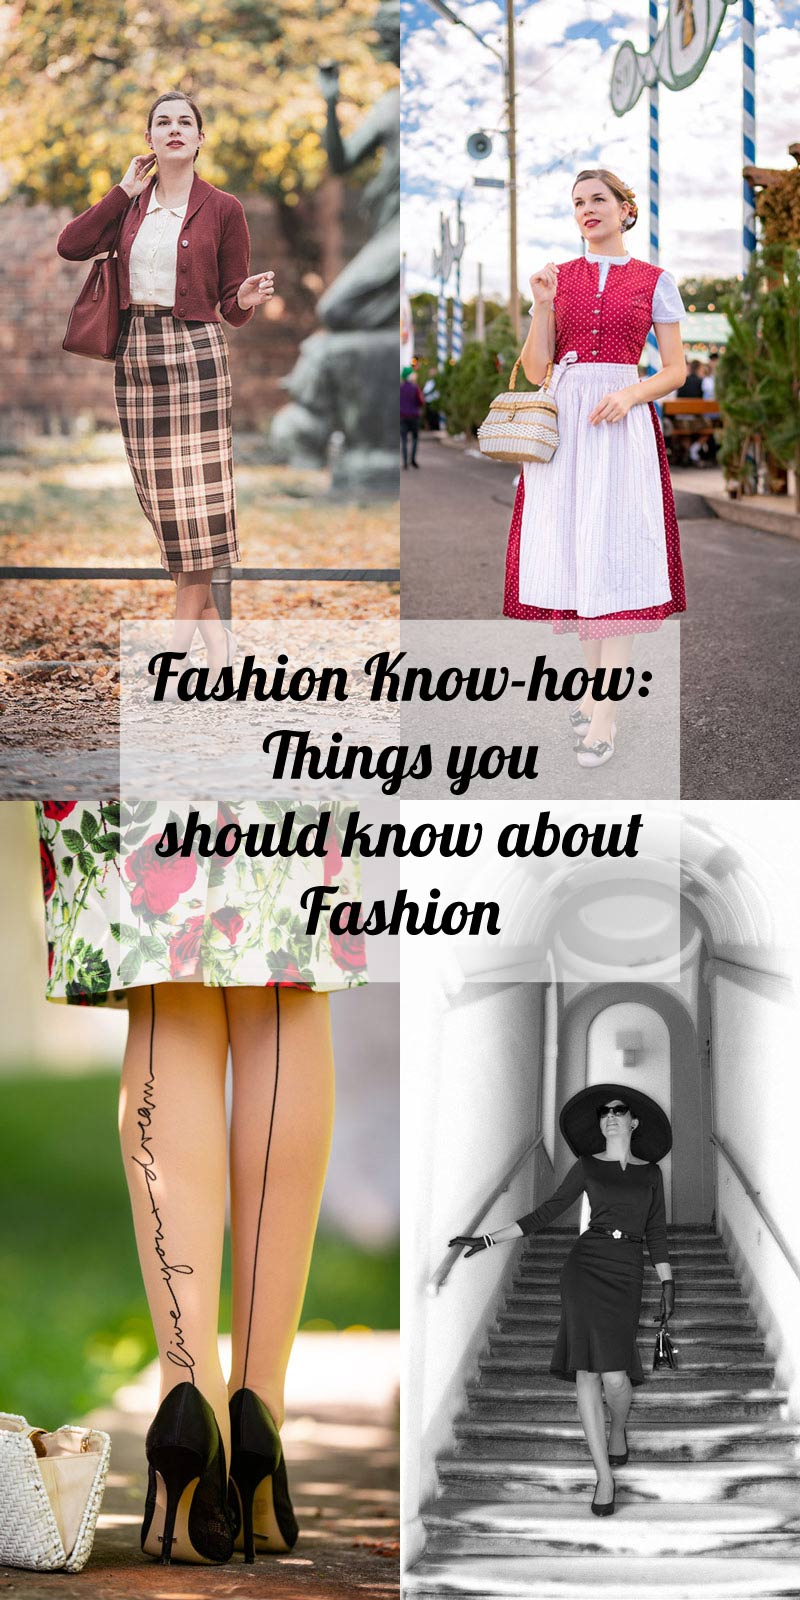 Fashion Know-how: Things you should know about fashion